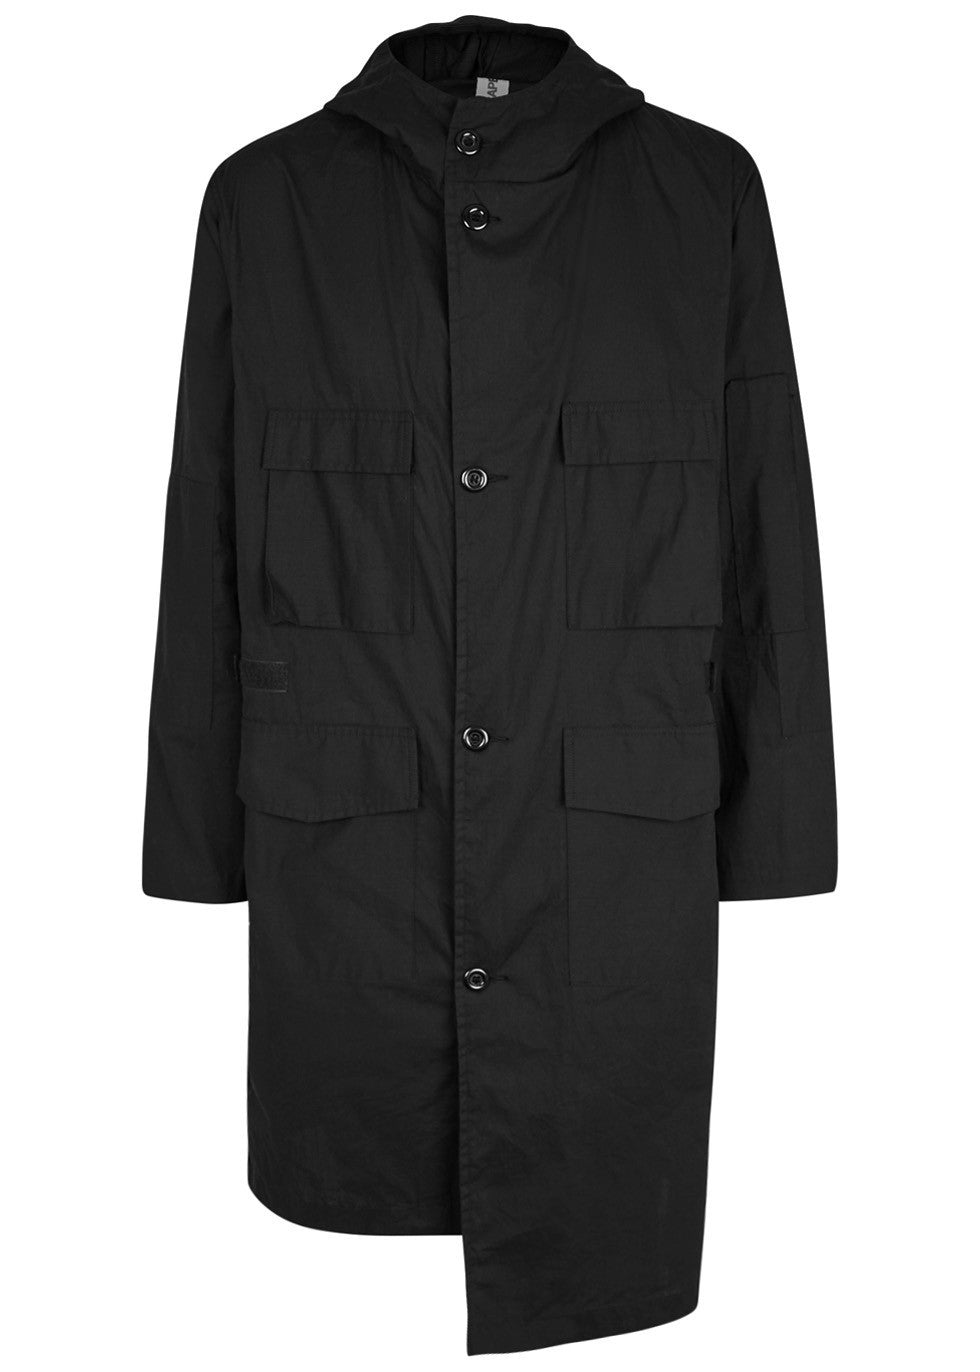 Legacy tailored parka - only 1x small left